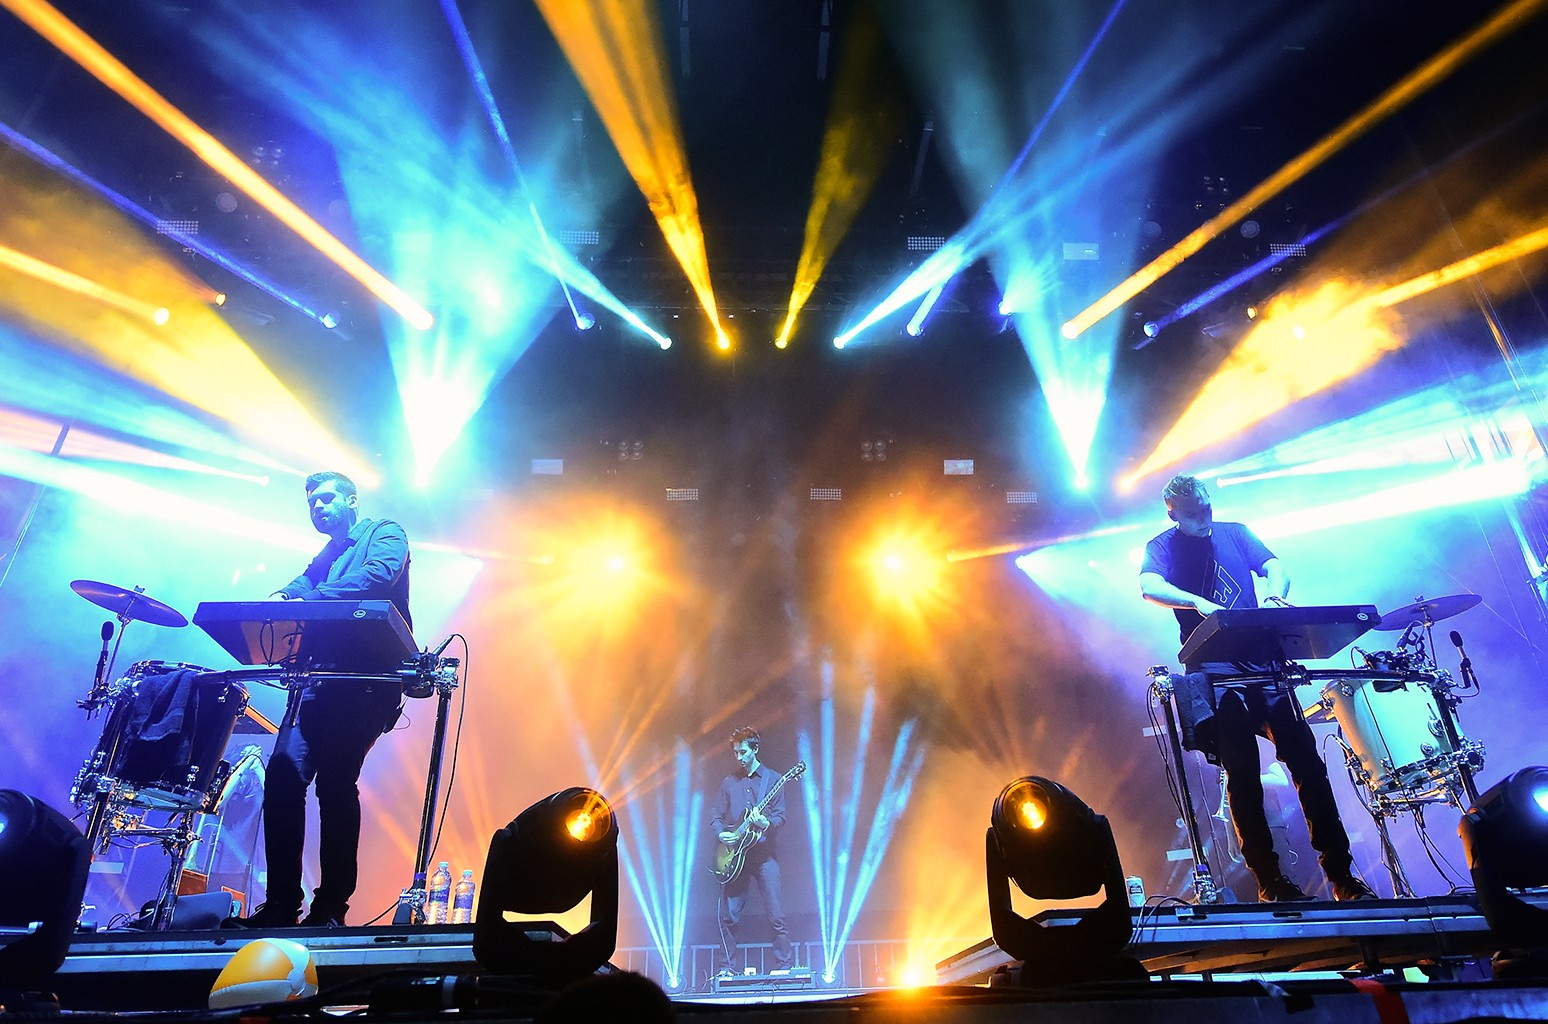 Odesza perform on stage at the Okeechobee Music & Arts Festival, Day 4, on March 6, 2016 in Okeechobee, Fla.